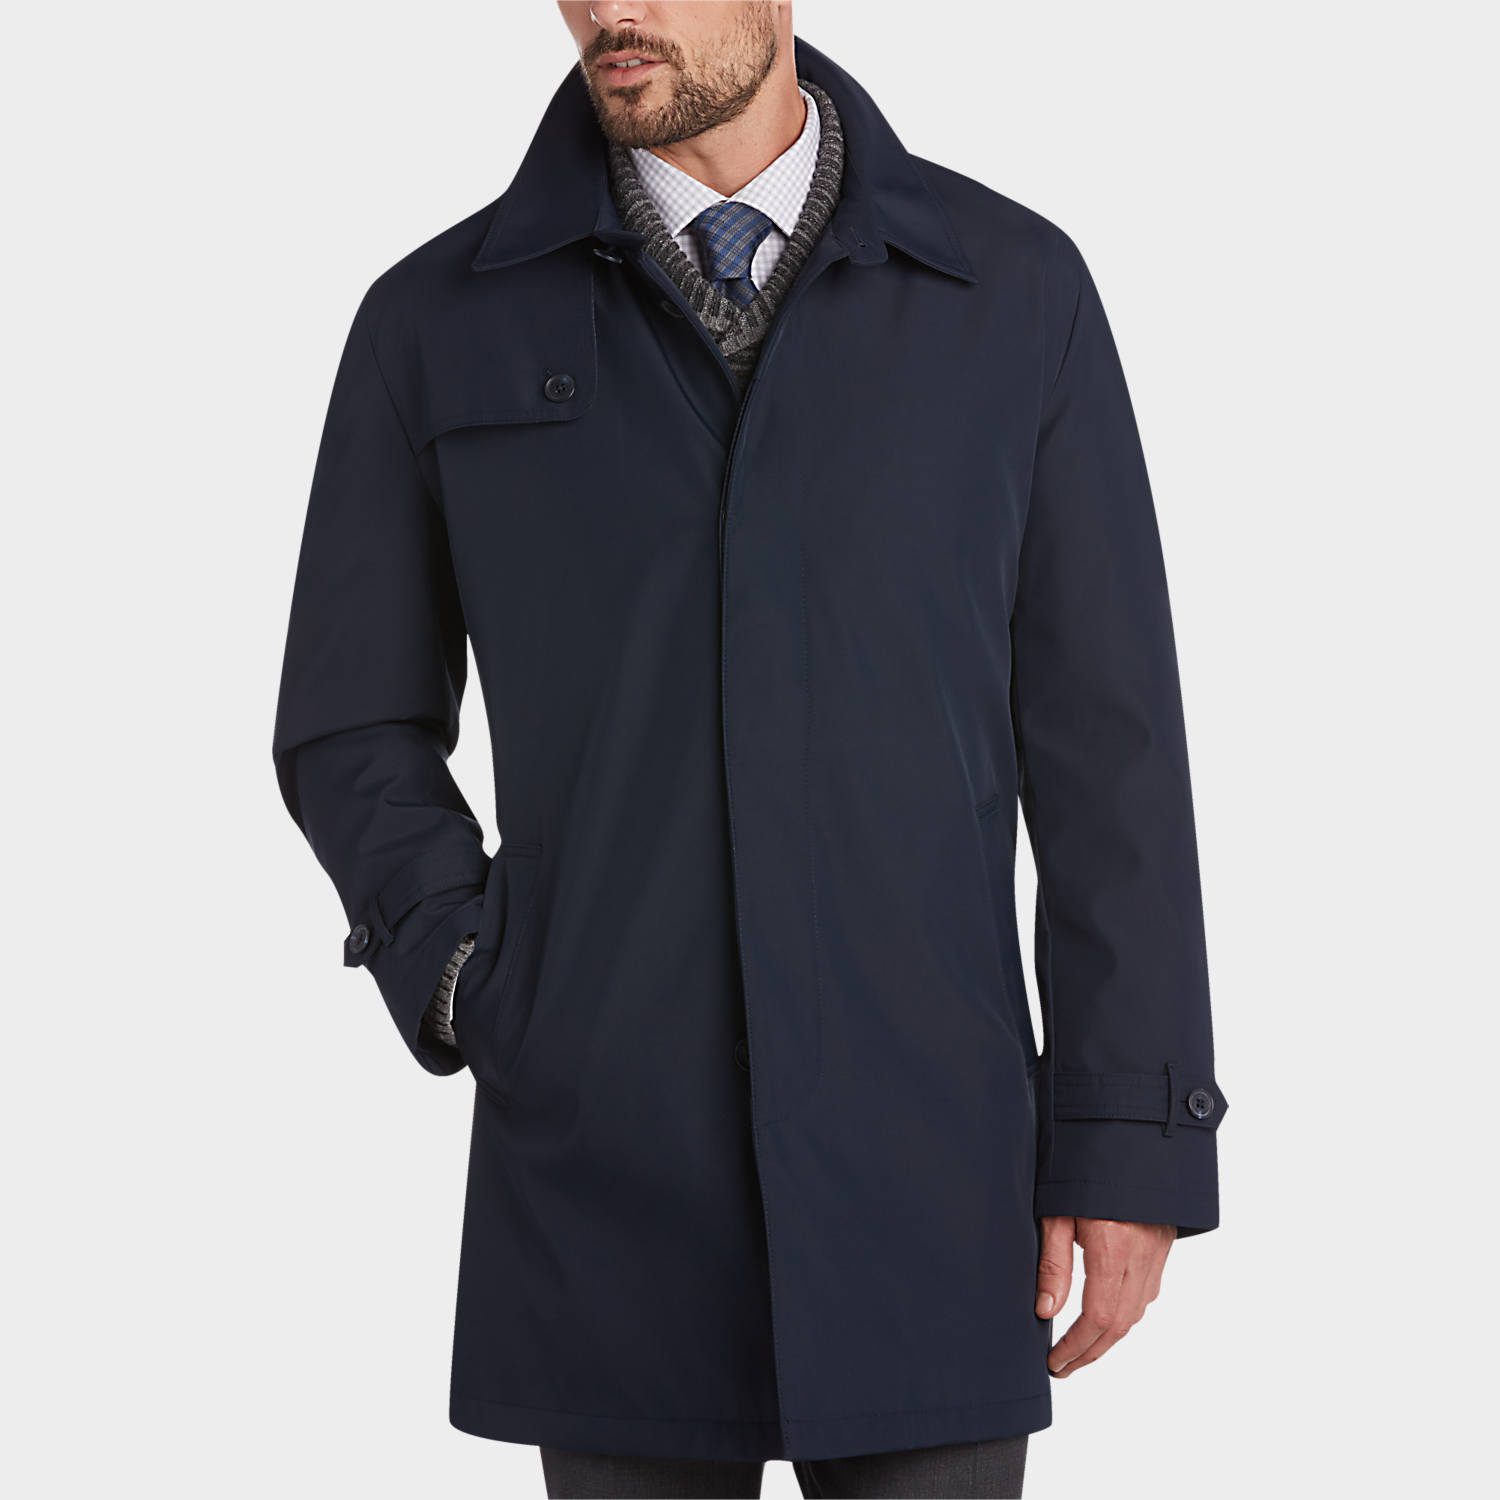 mens raincoat mens raincoats, outerwear - joseph abboud postman blue raincoat - menu0027s  wearhouse IJXIRKF